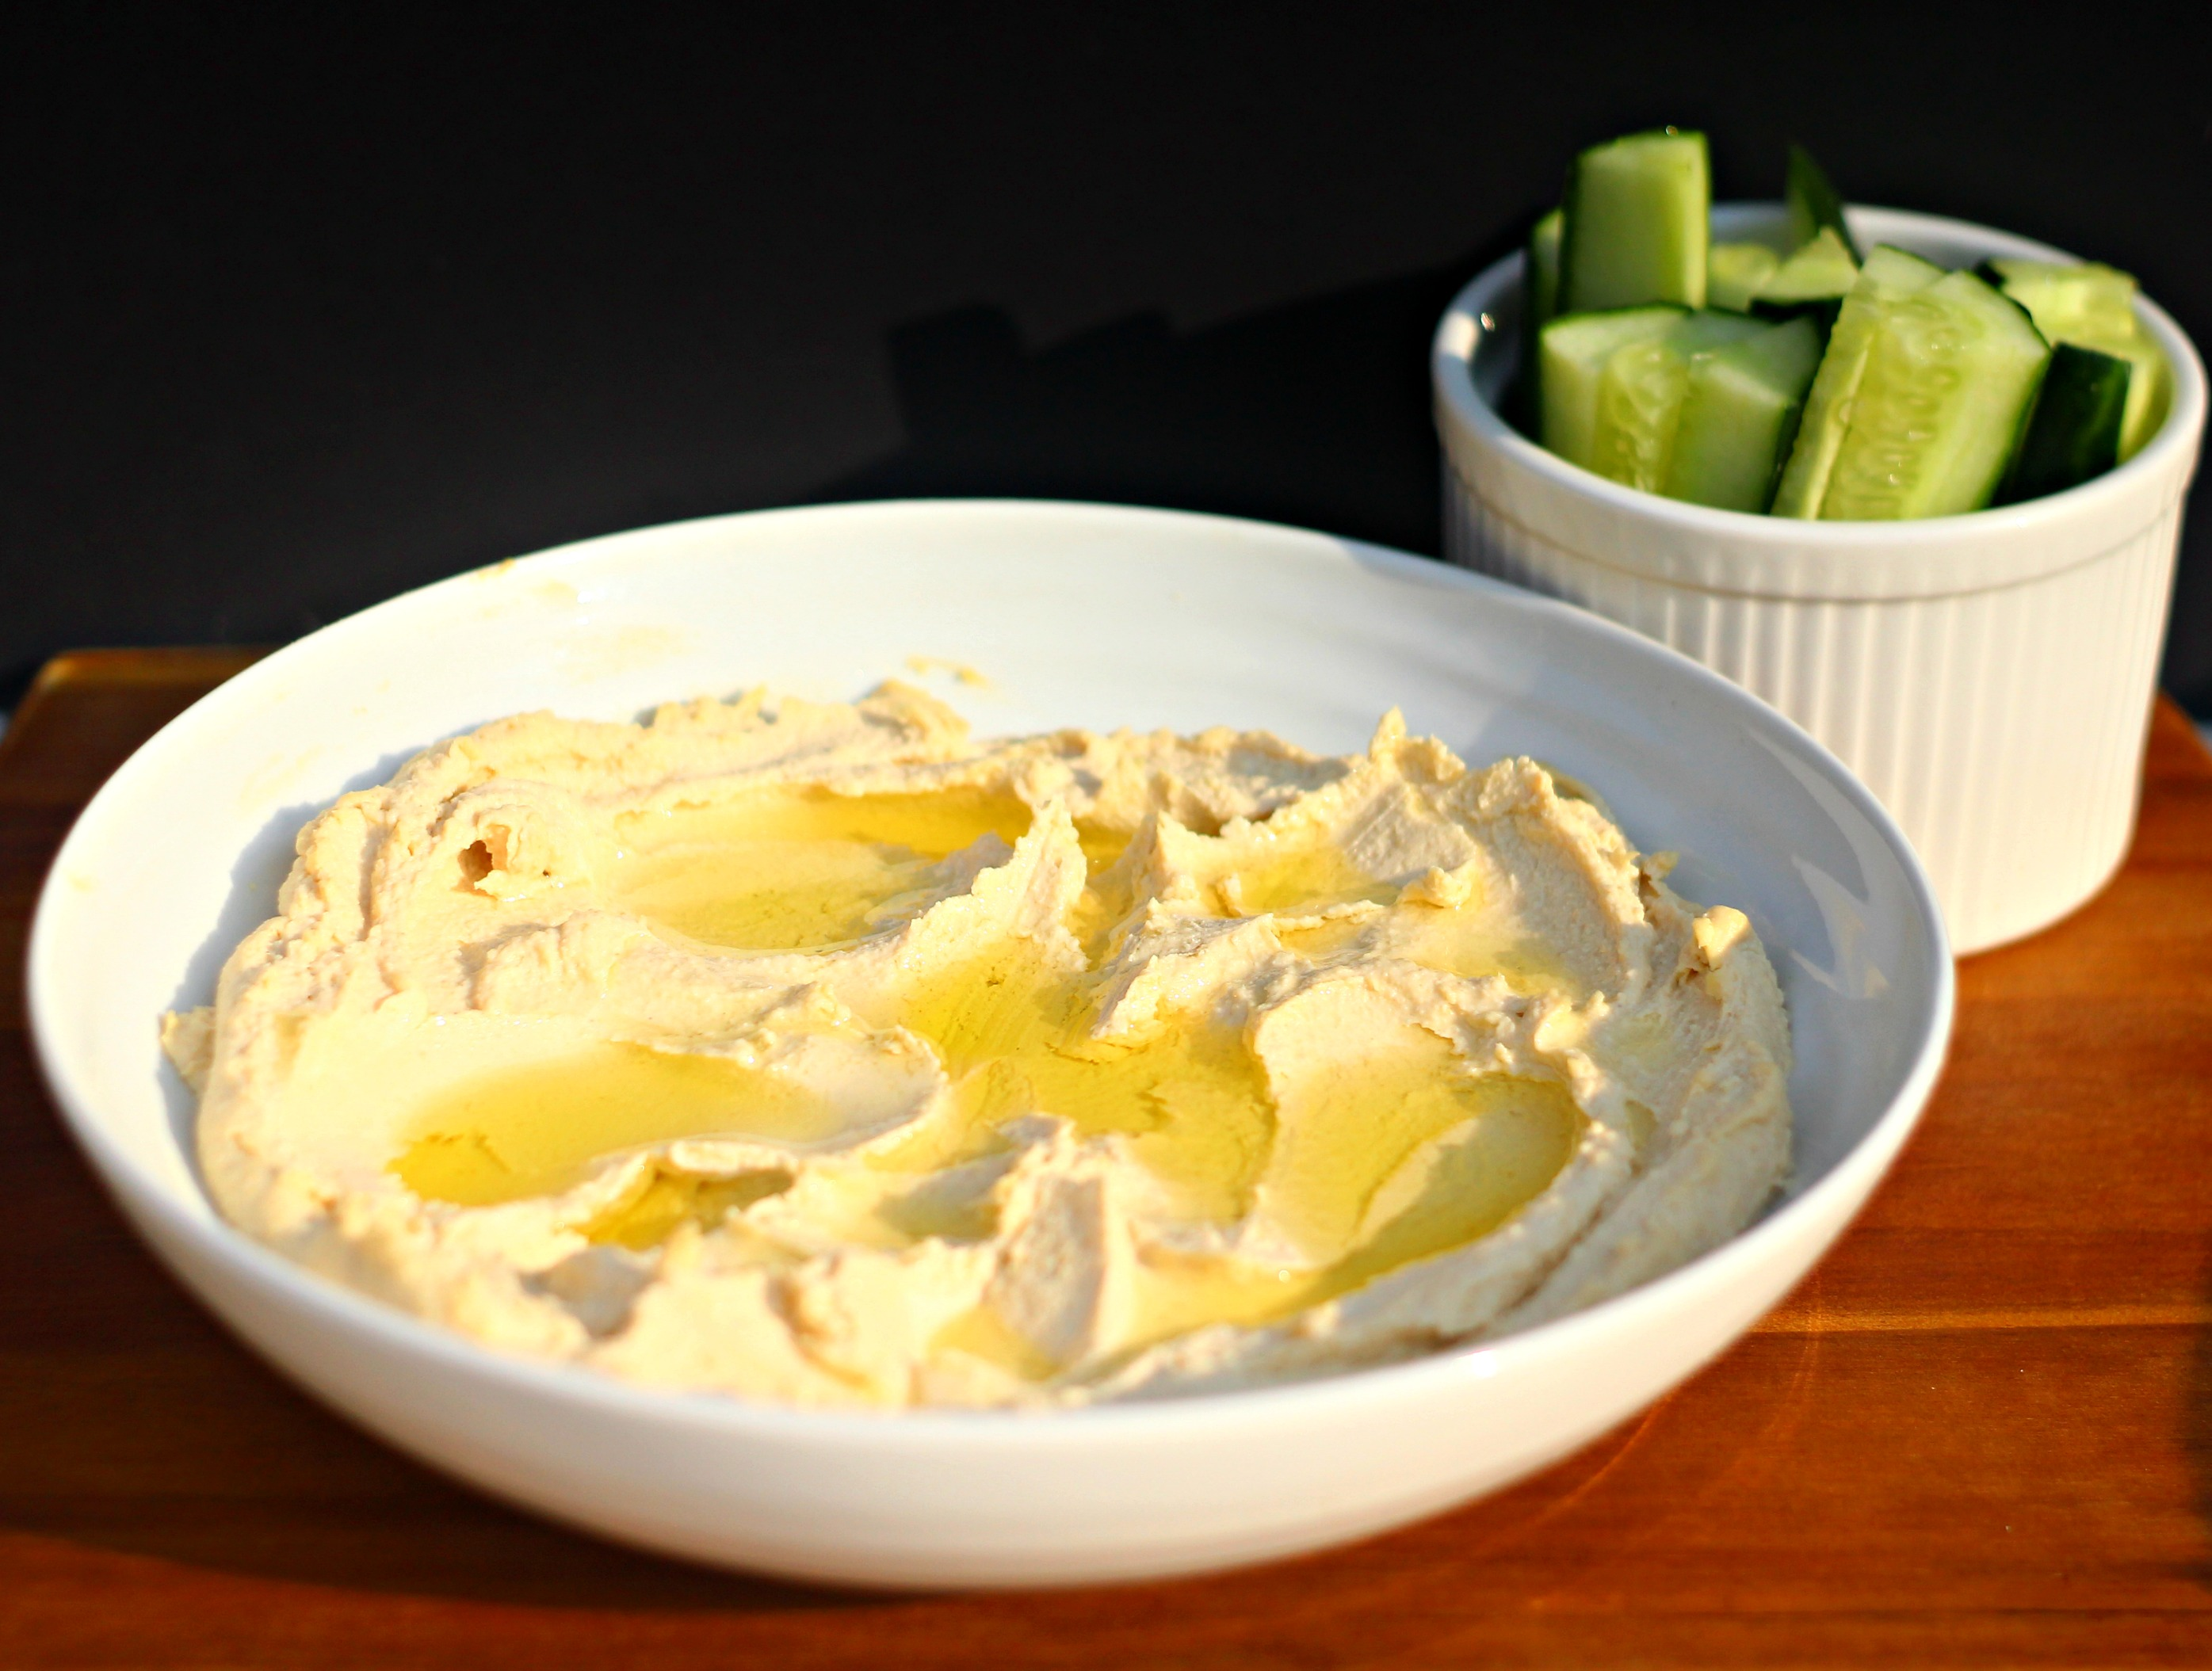 Hummus recipe with olive oil and cucumber sticks